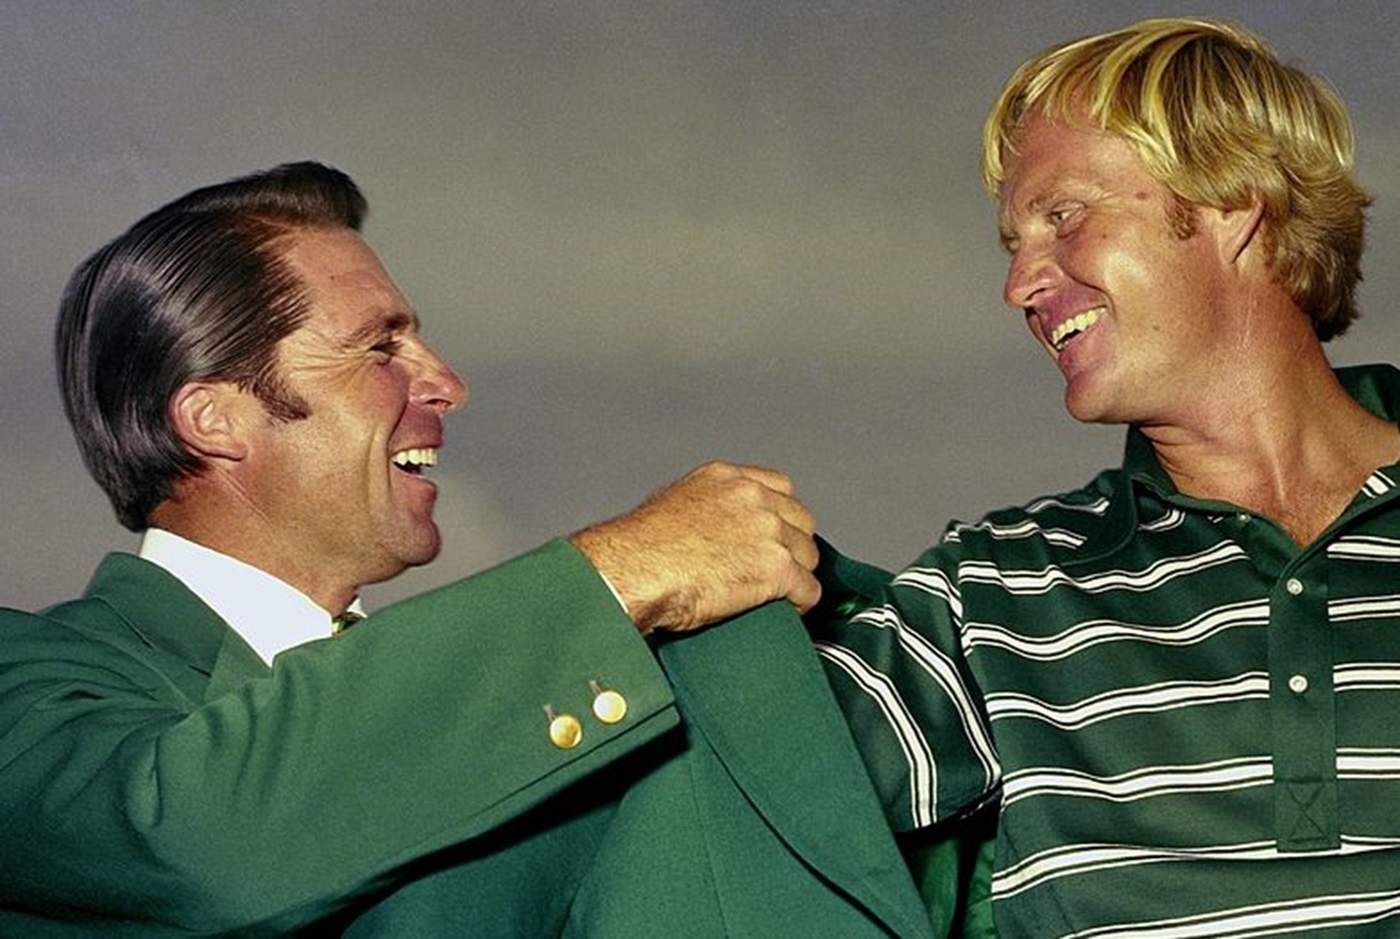 Jack Nicklaus: The Master